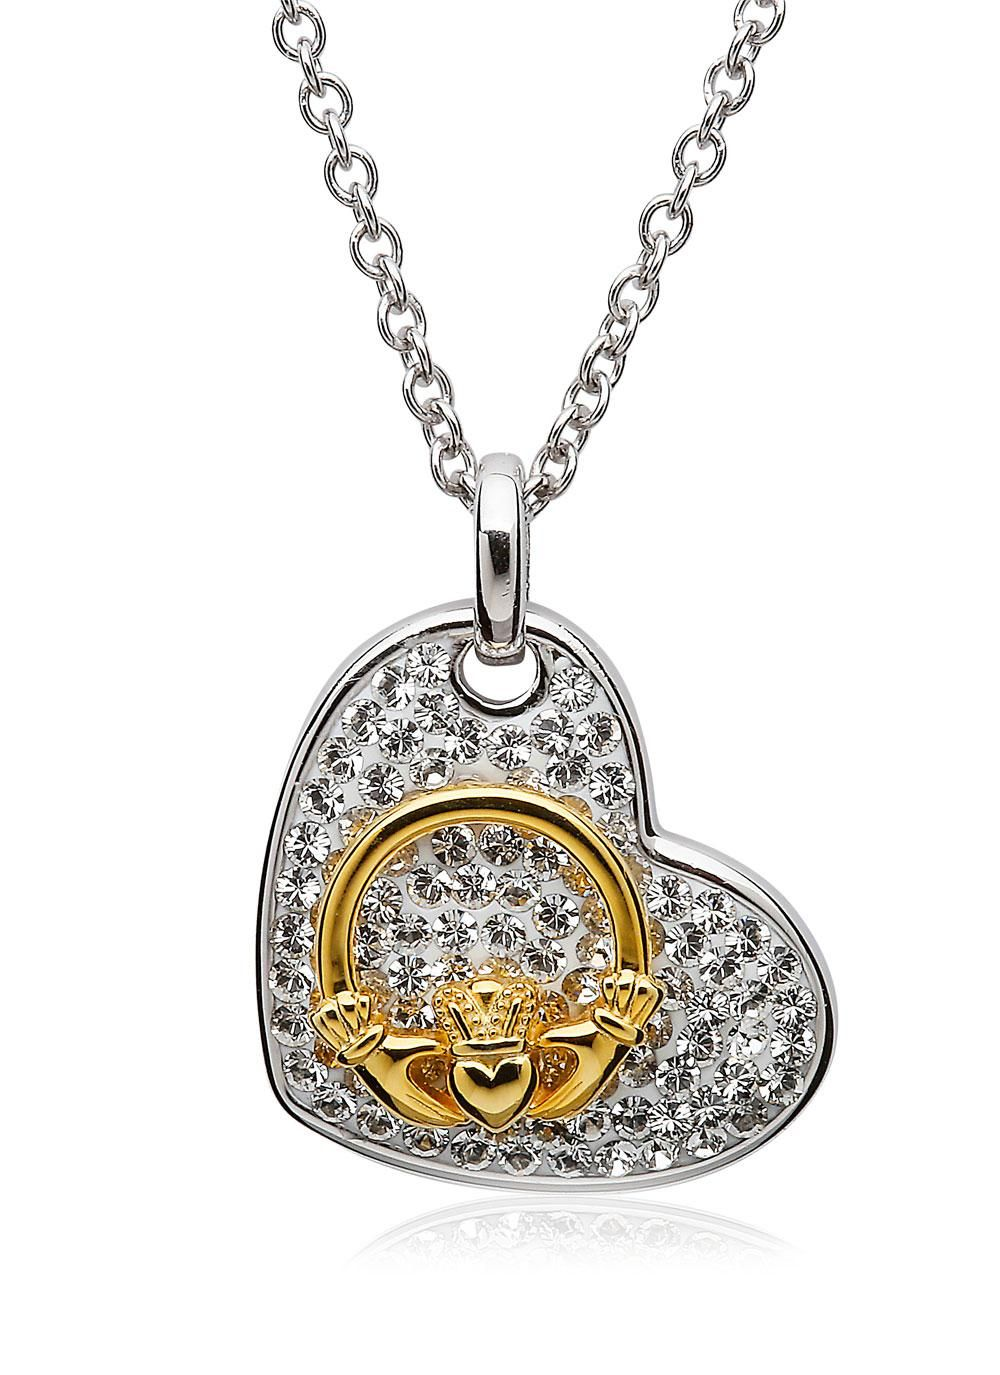 Claddagh Heart Pendant Encrusted With Swarovski Crystals